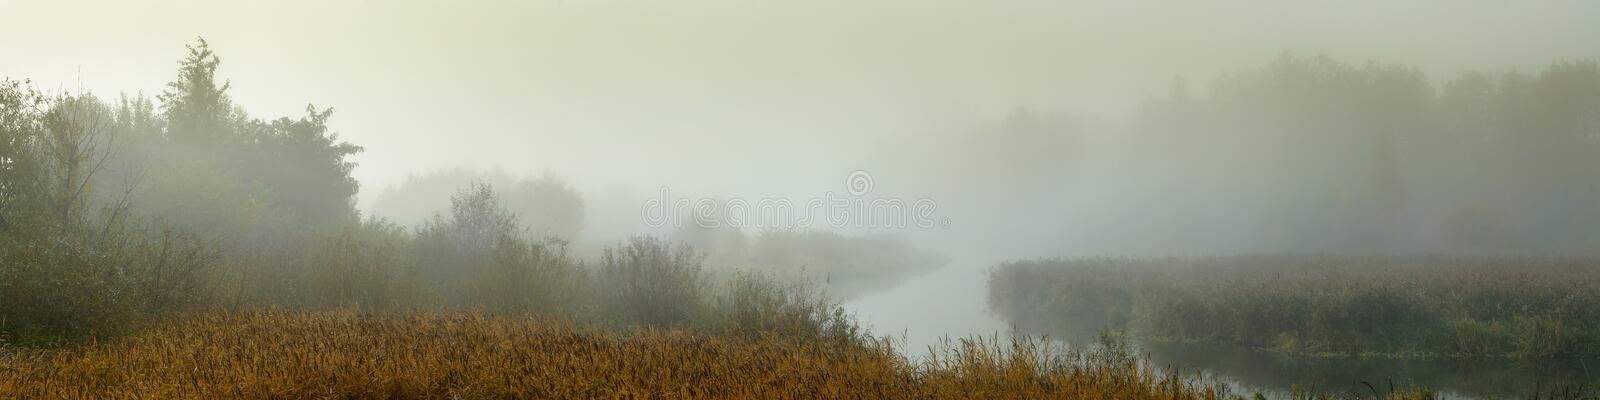 Morning misty landscape. panoramic view of a narrow river with swampy shores in dense fog. Autumn morning misty landscape. panoramic view of a narrow river with stock photography